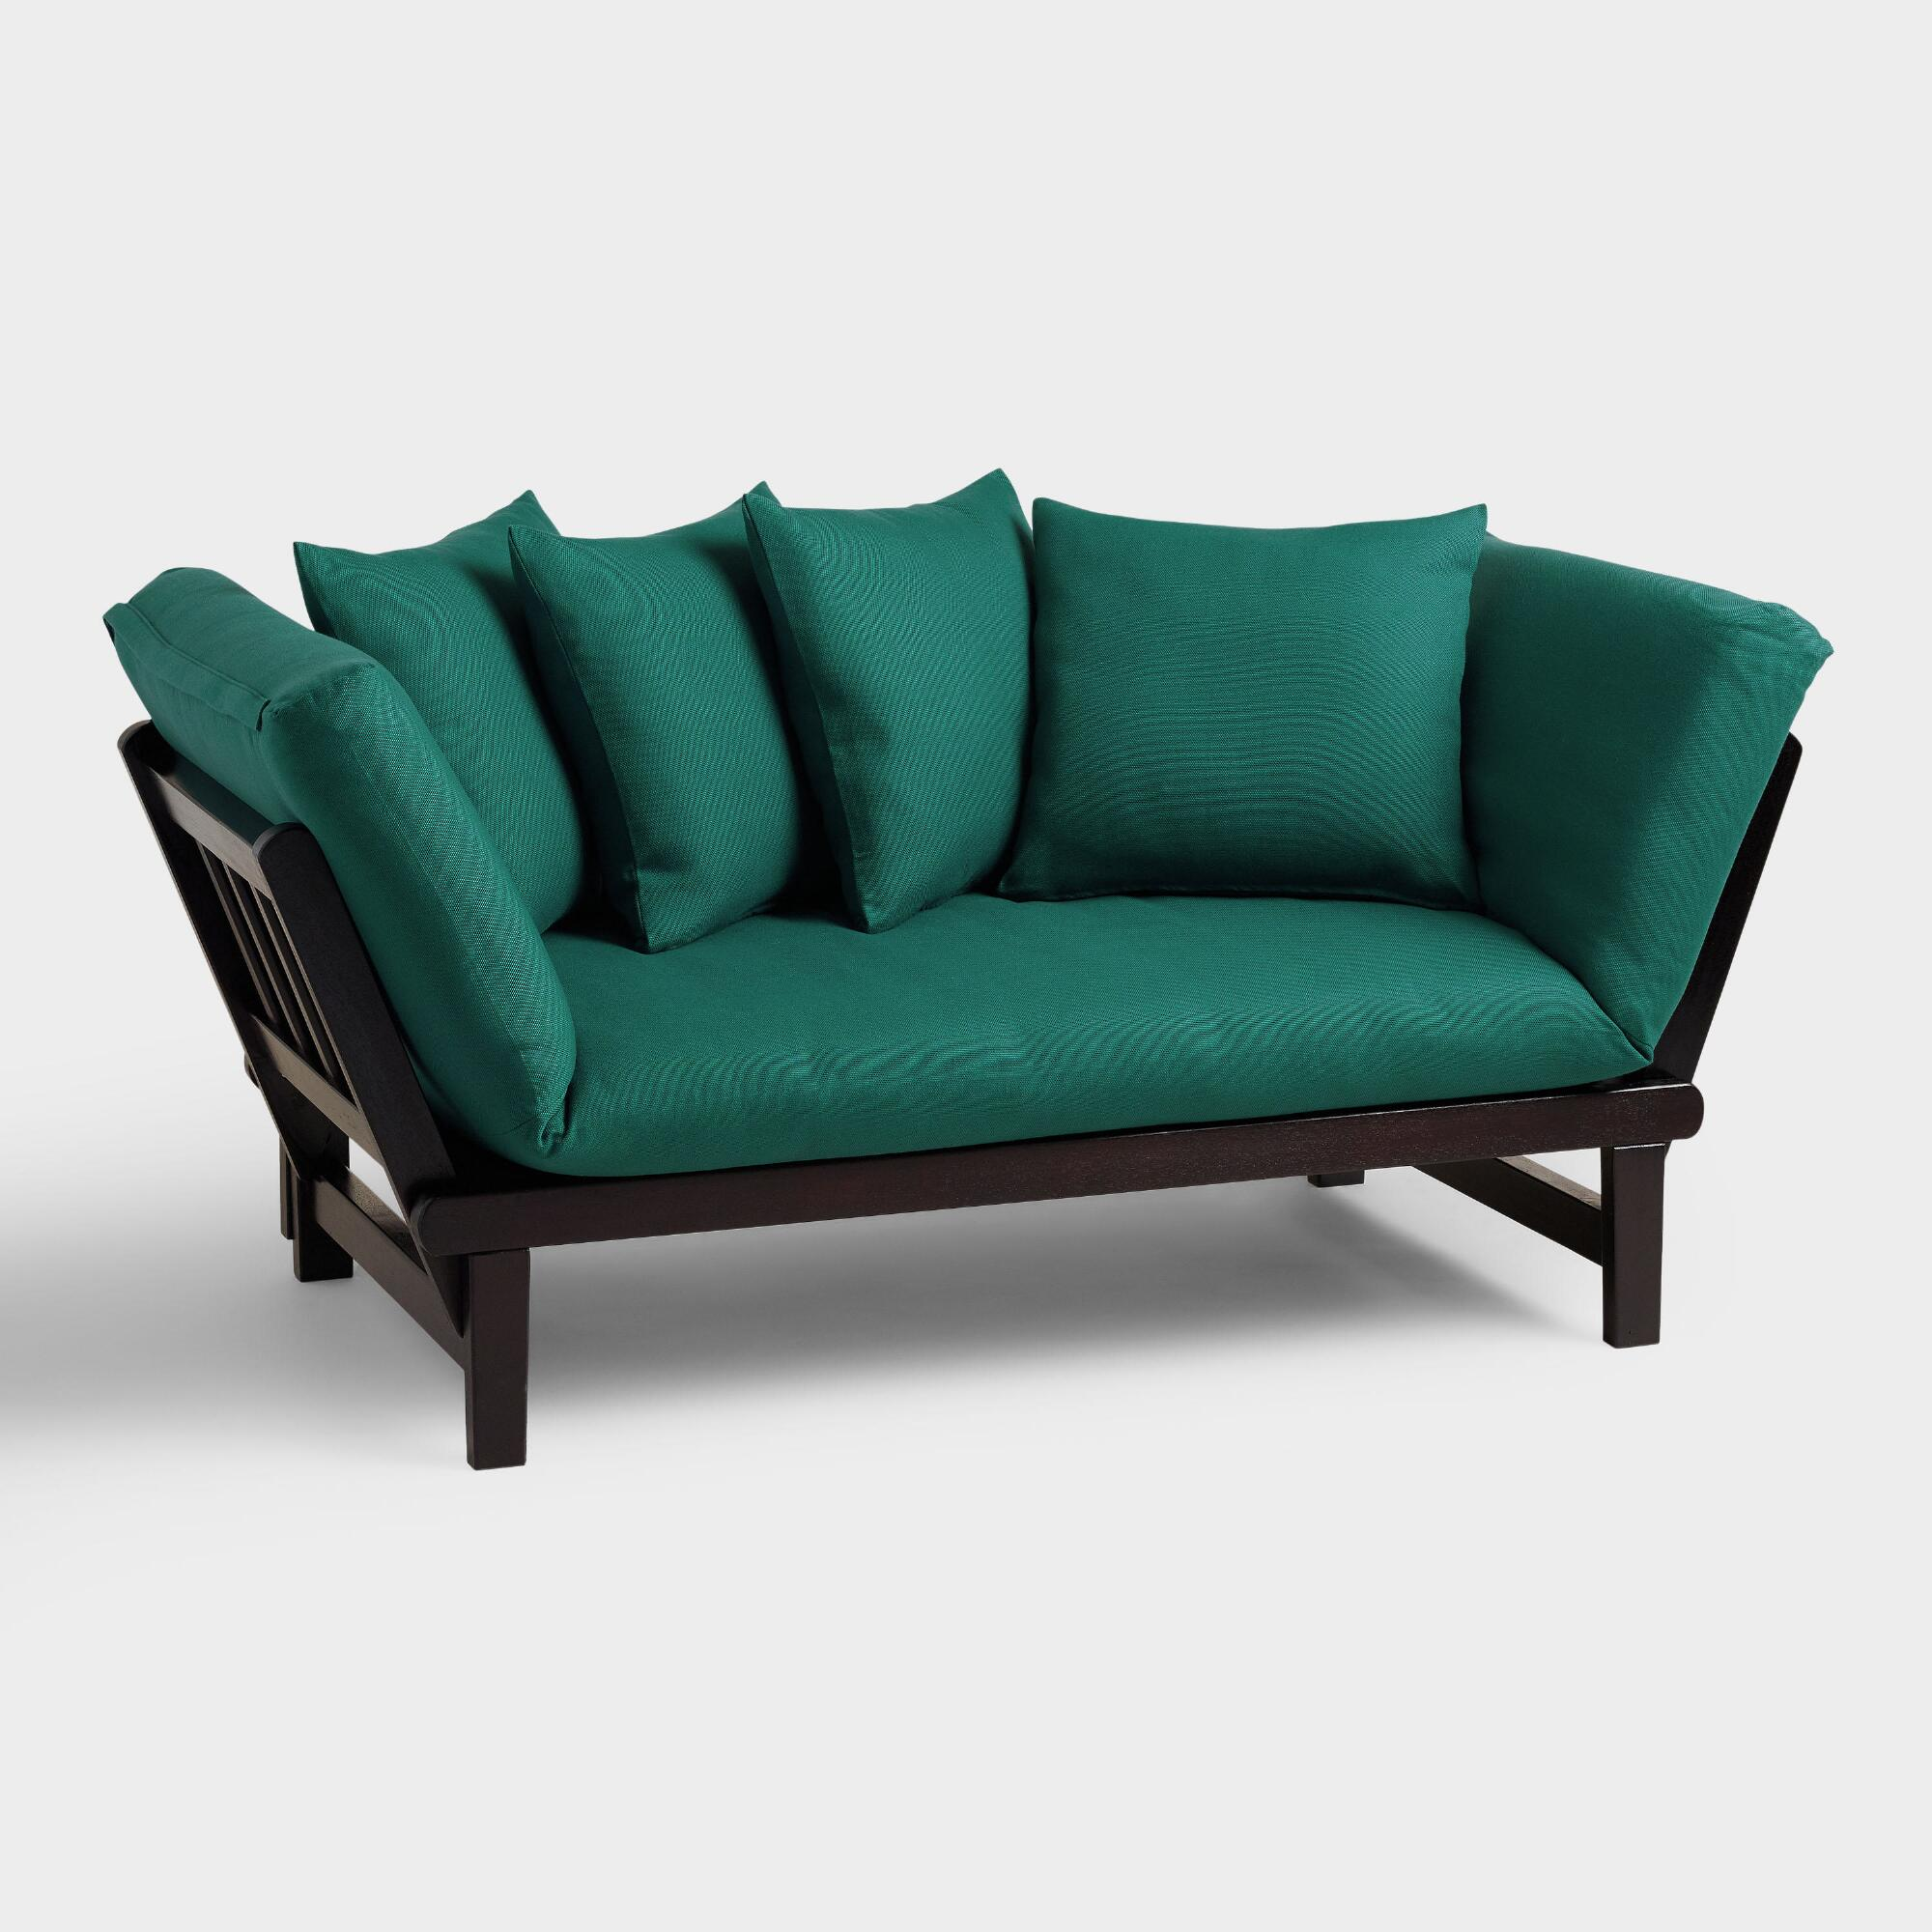 Simplicity sofas for sale - Mallard Studio Day Sofa Slipcover